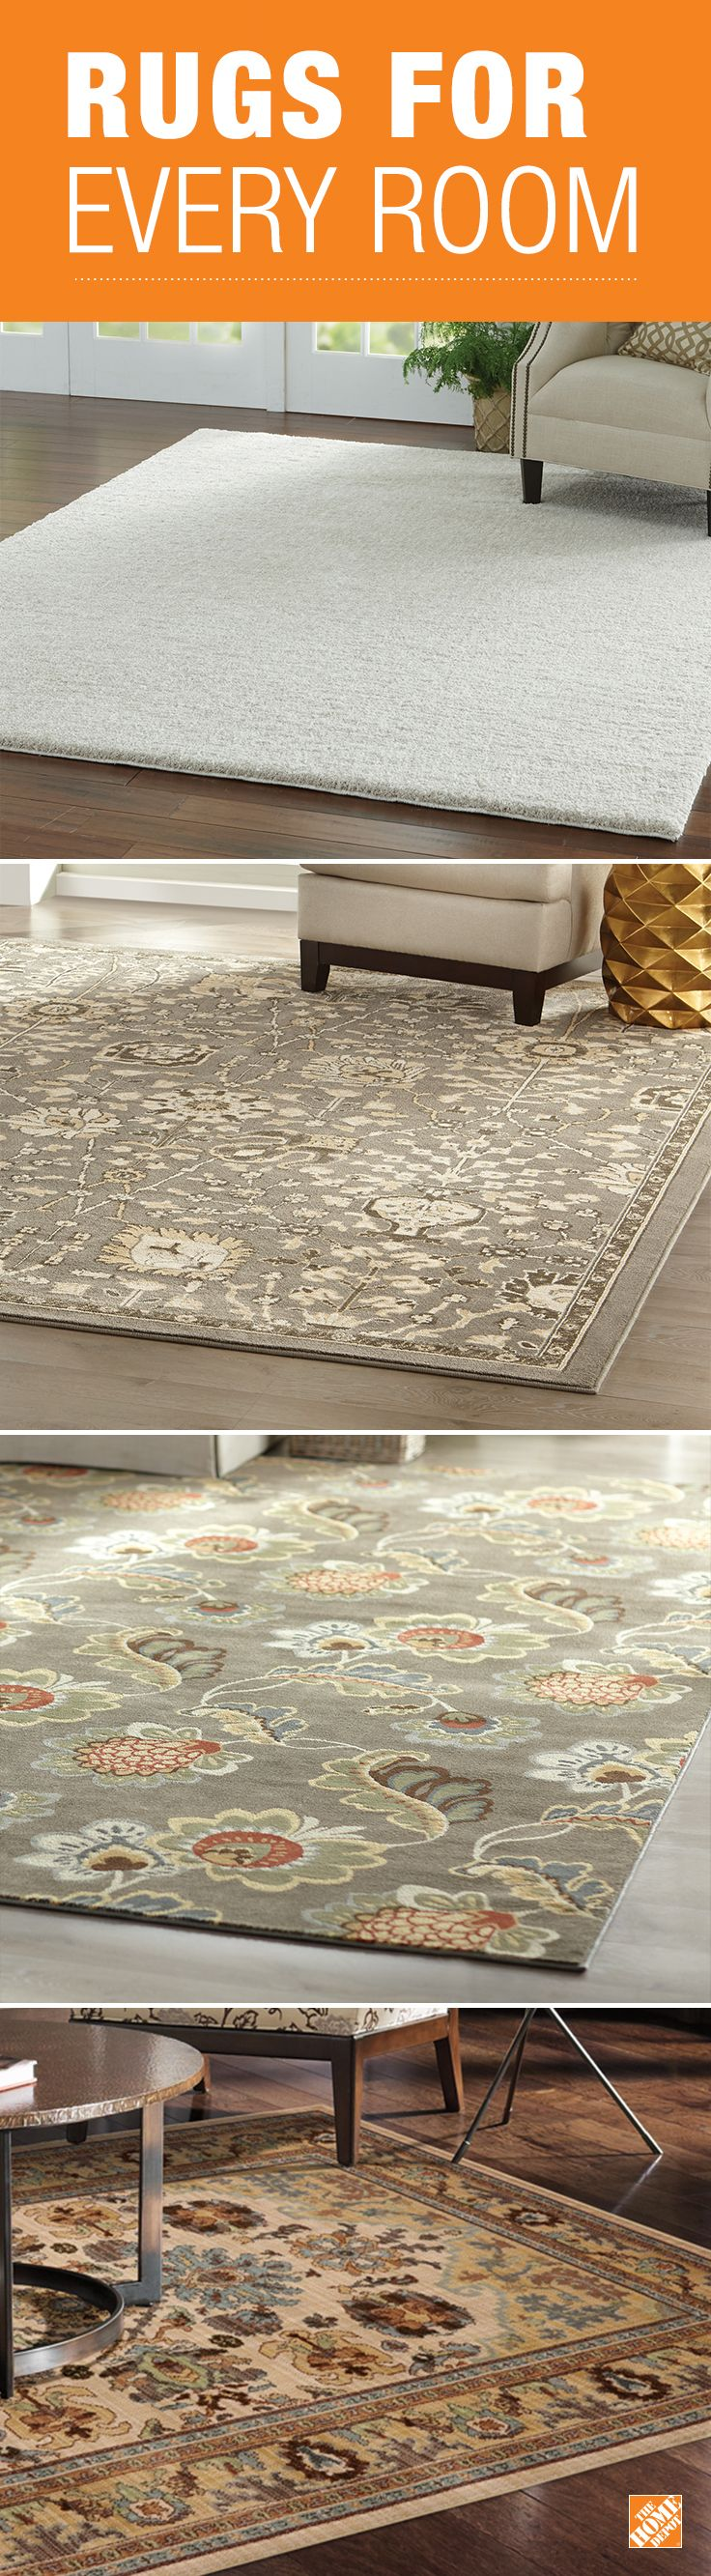 369 best Flooring Carpet & Rugs images on Pinterest